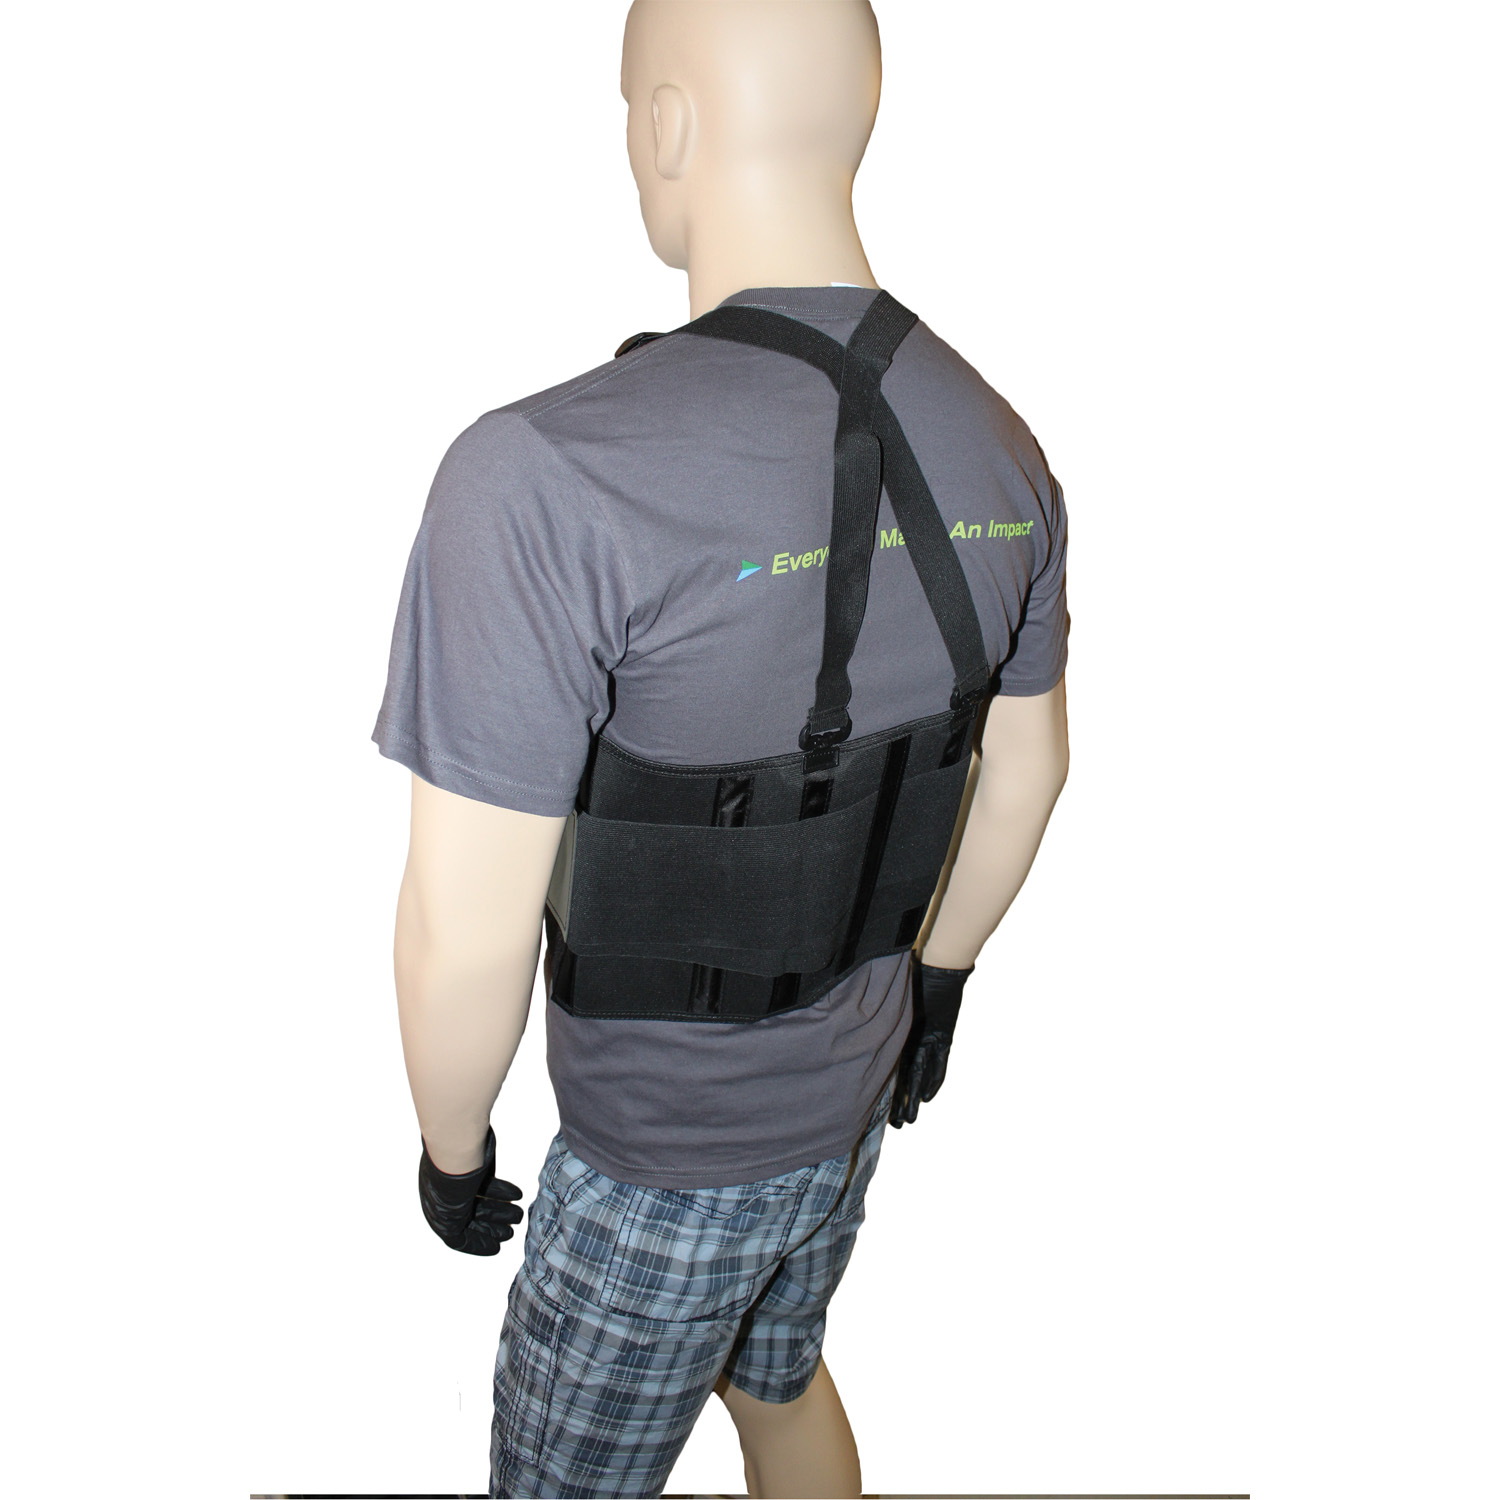 Impact Products 7379M back support belt